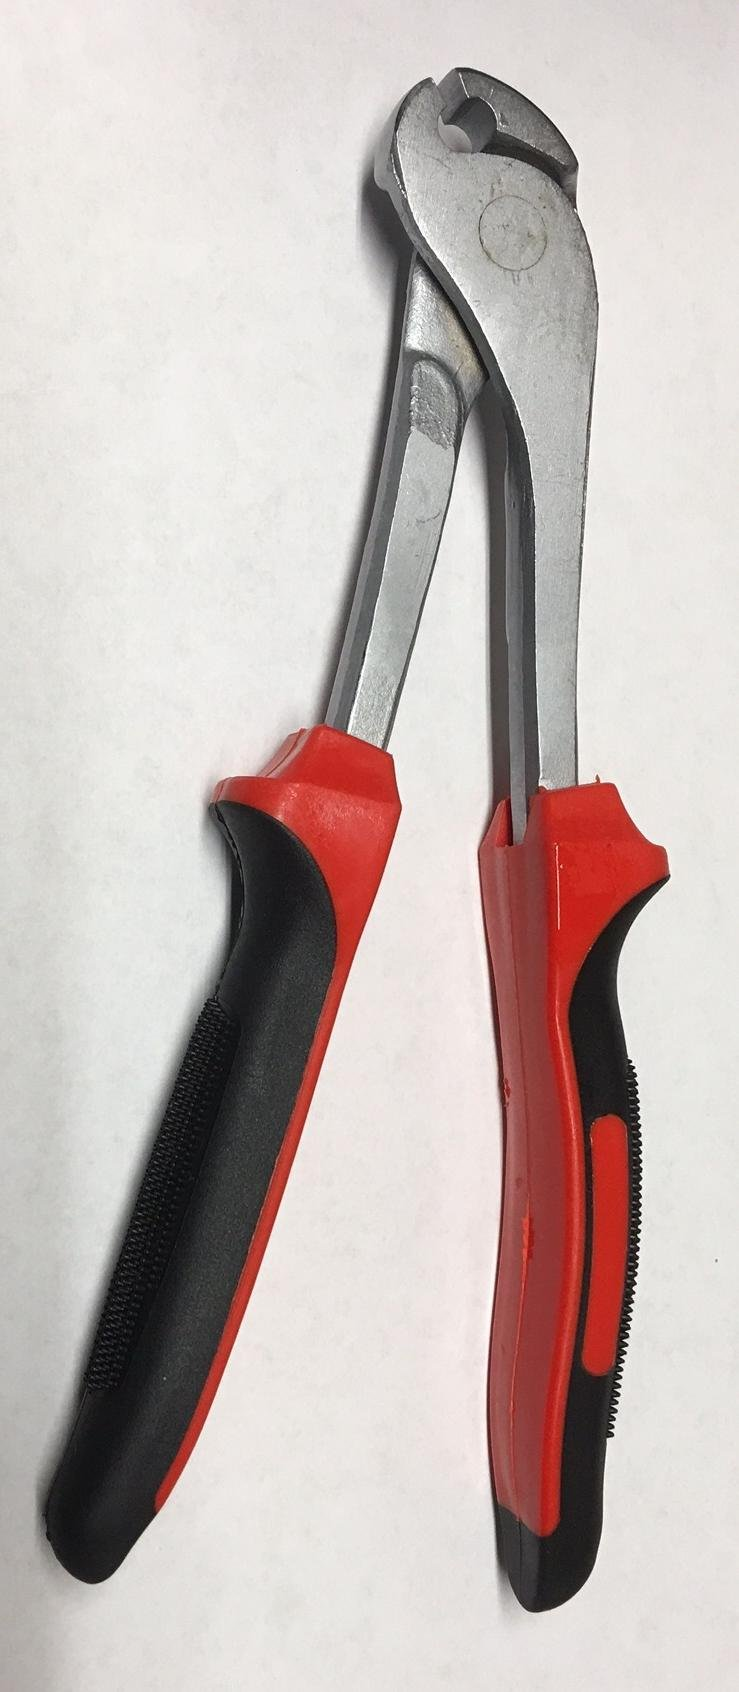 J-clip Pliers Heavy Duty cage building pliers by Rabbitnipples.com